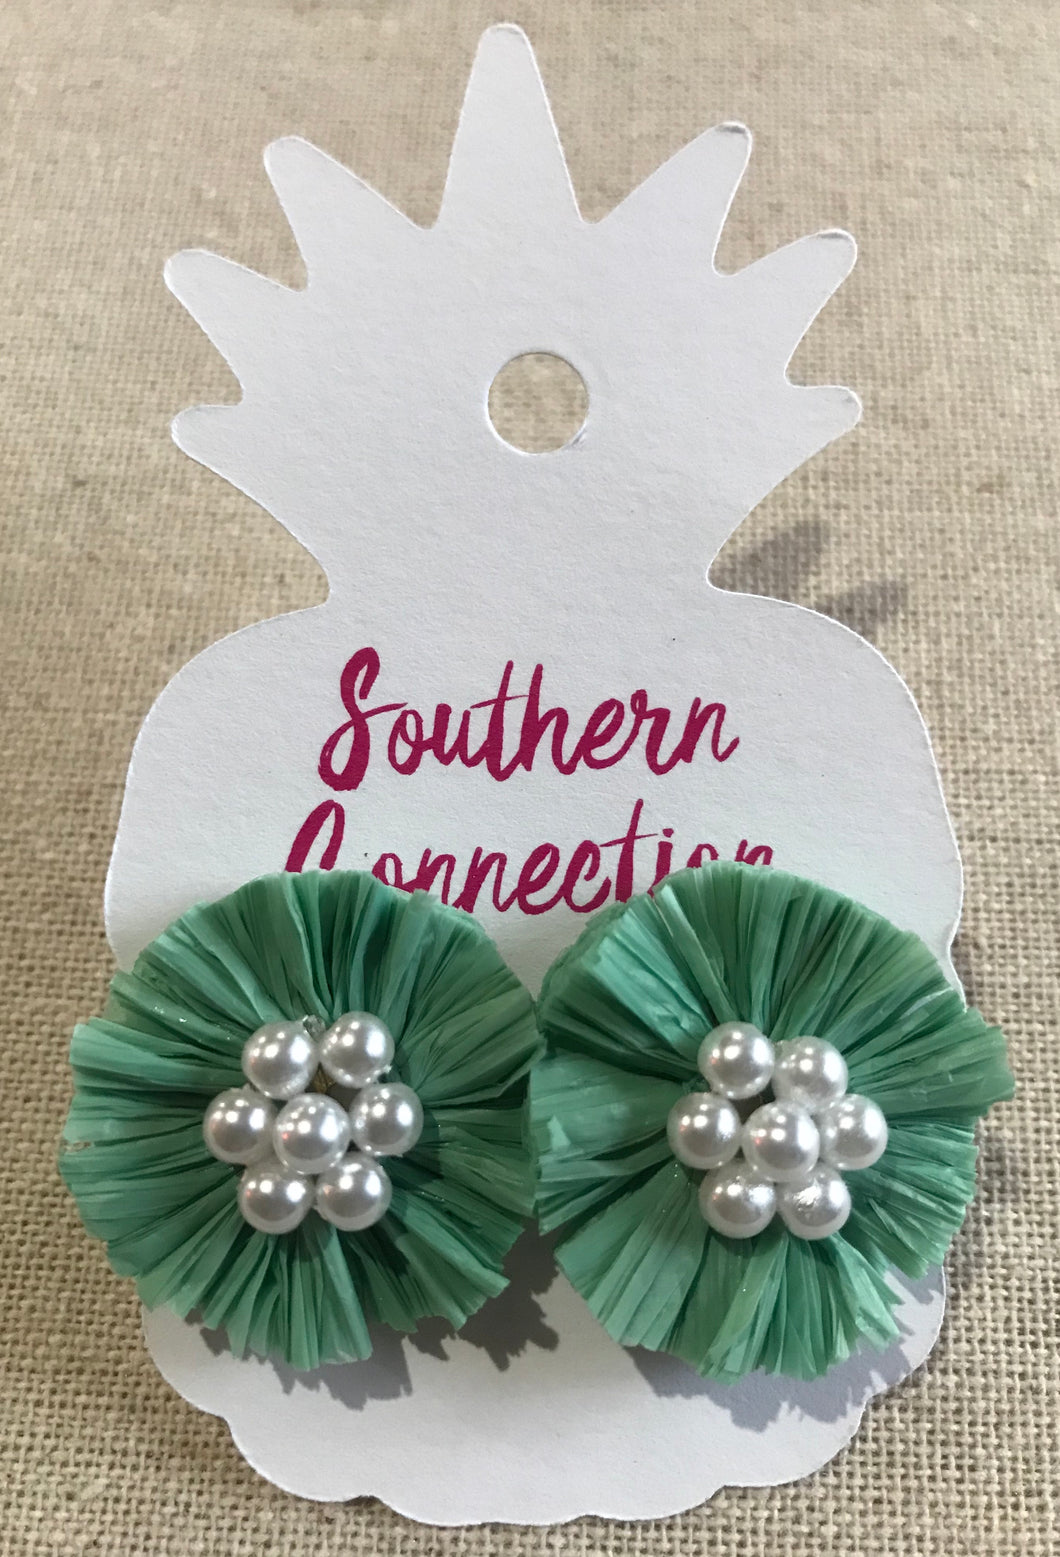 Southern Connection ~ Raffia Earrings Pink